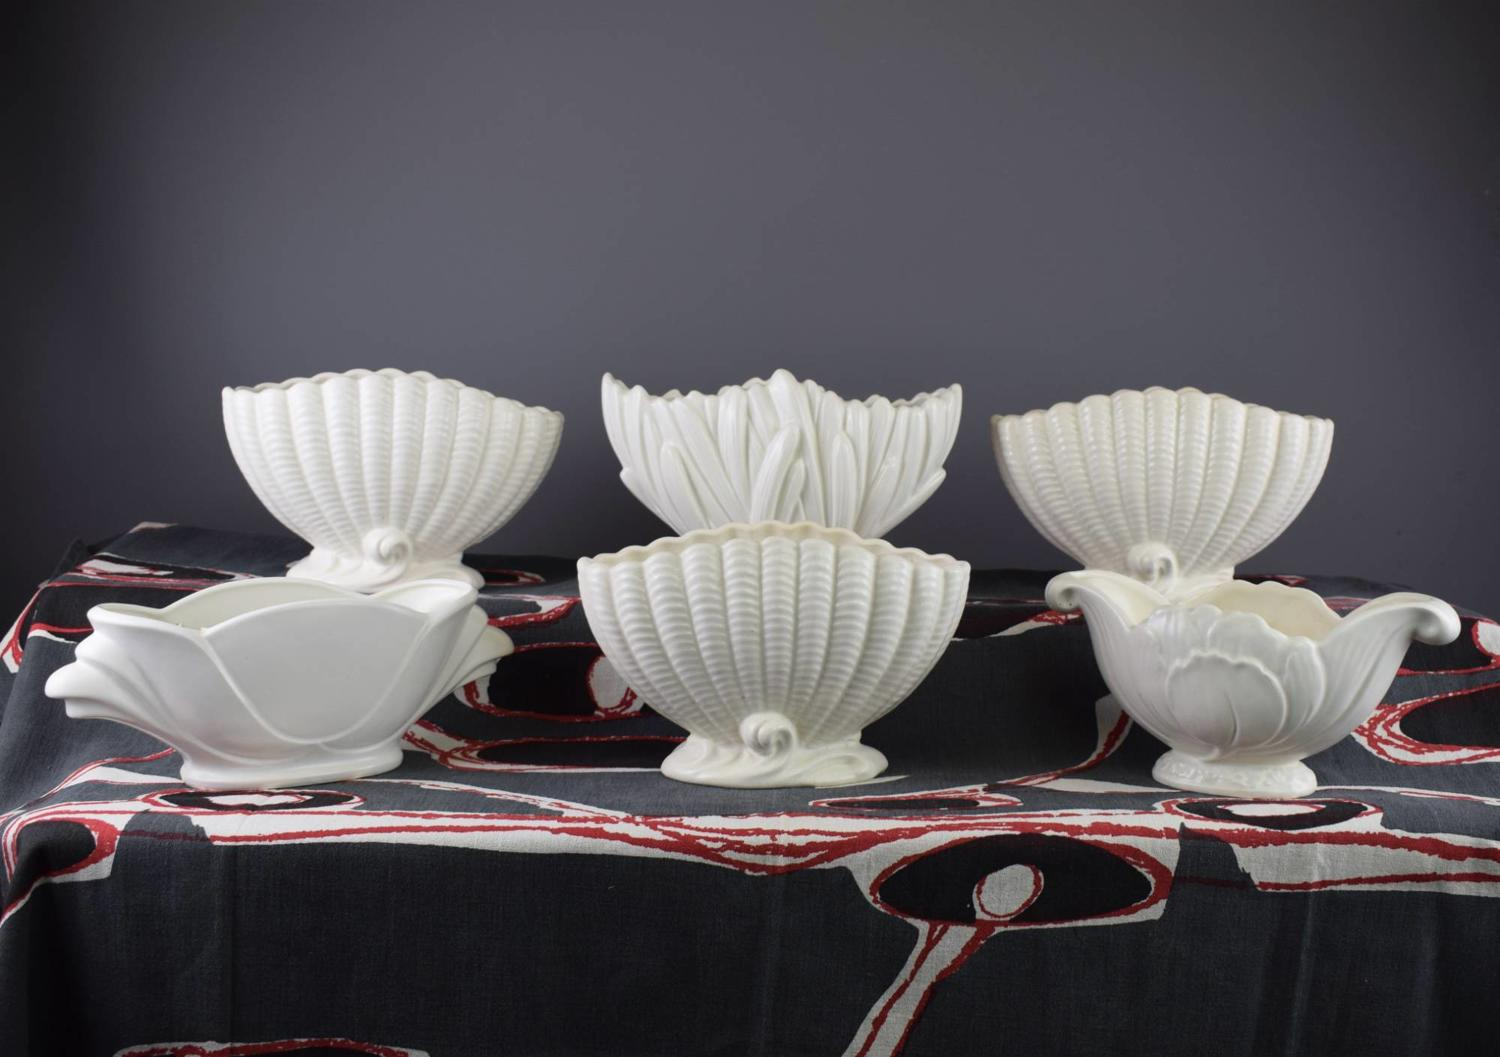 Six Sylvac Cream Glazed Mantle Vases / Planters